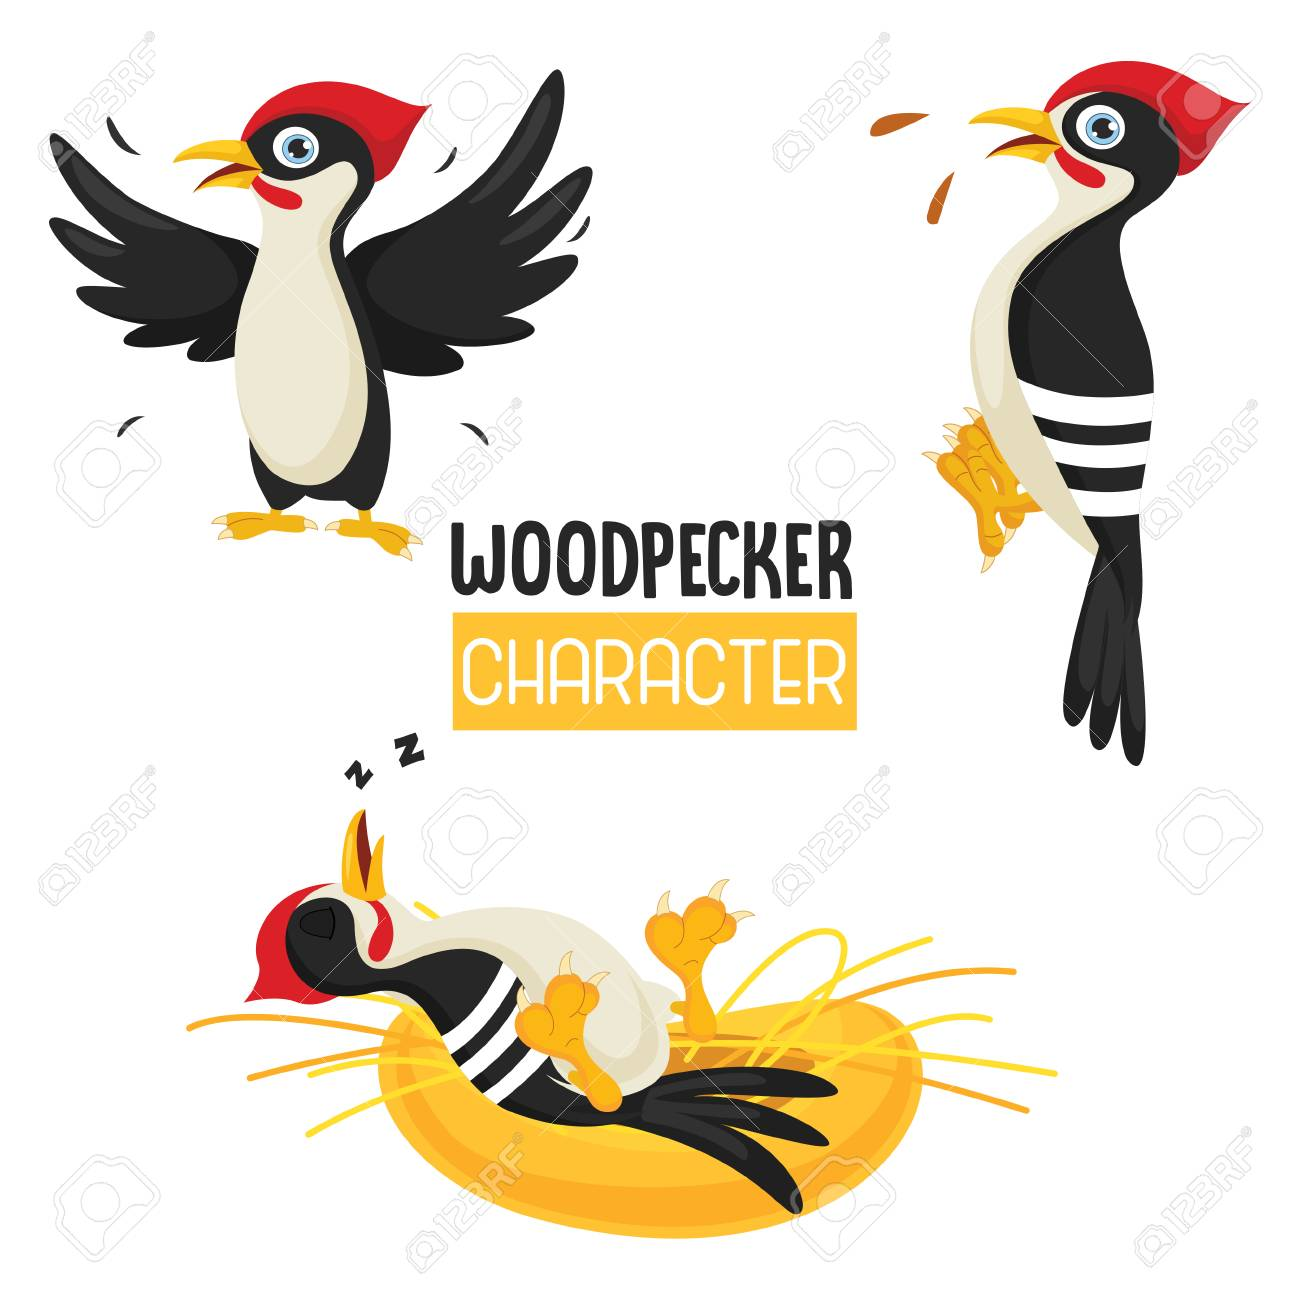 Vector Illustration Of Cartoon Woodpecker.